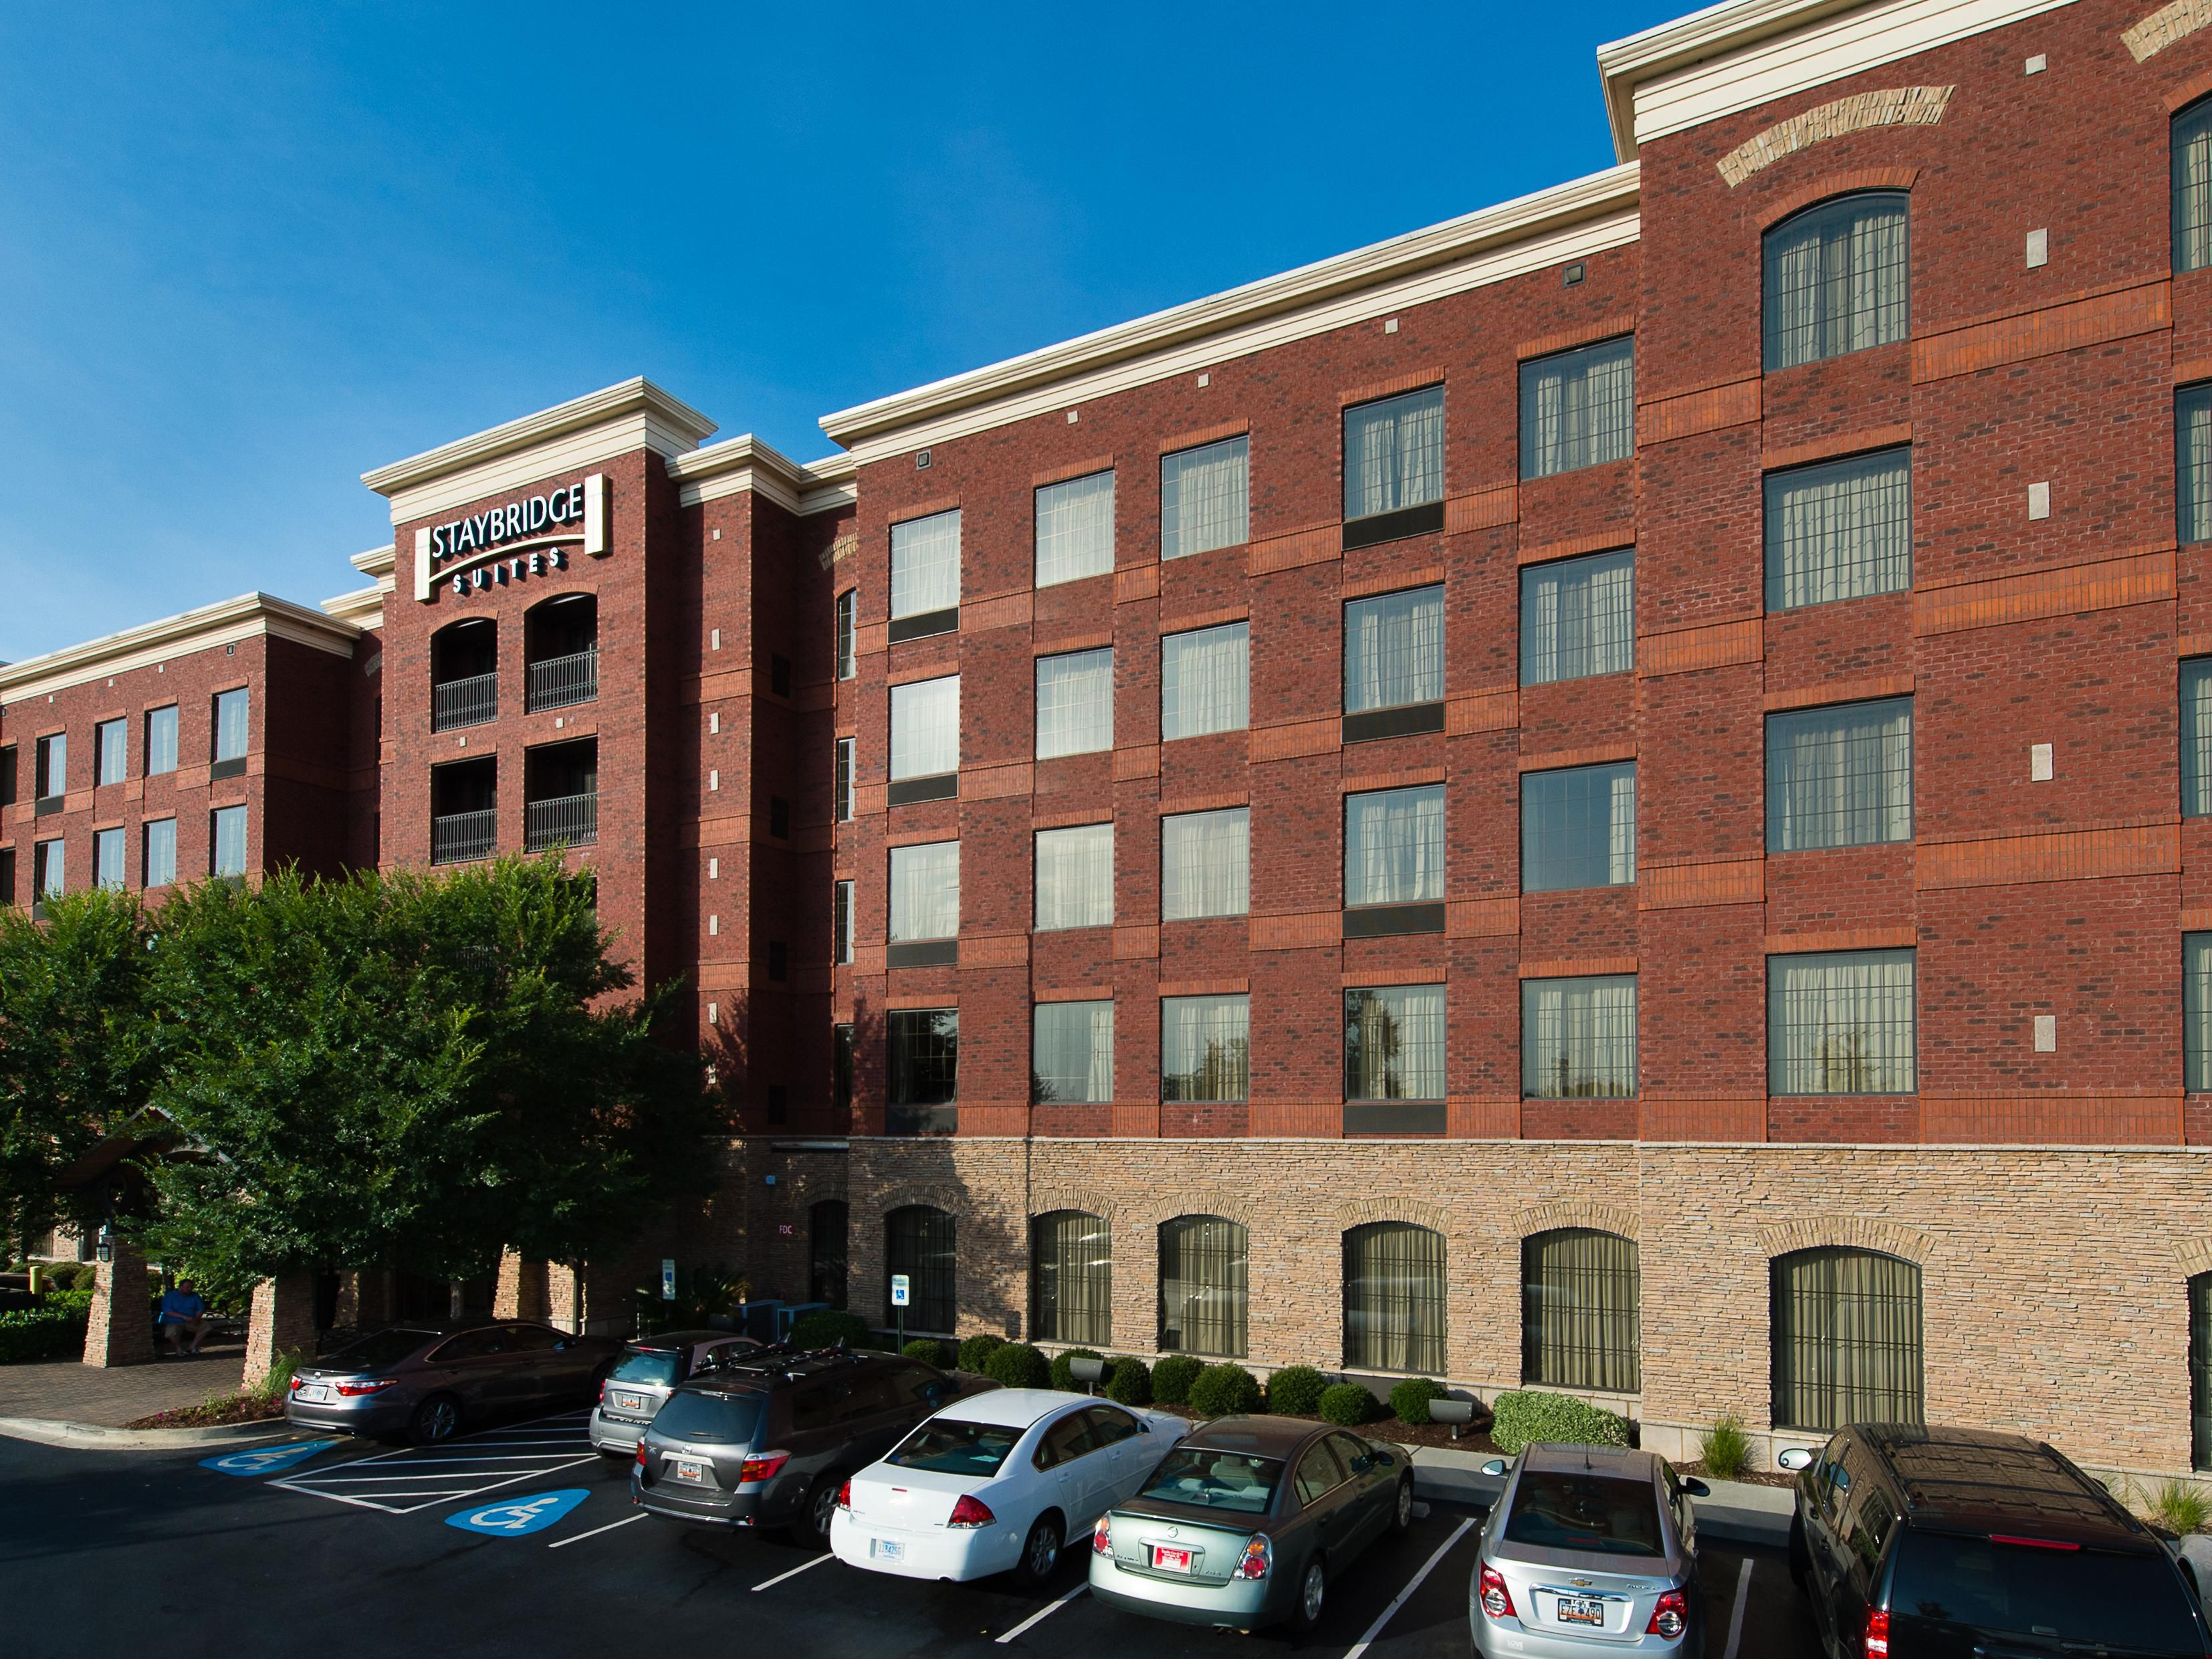 Staybridge Suites Columbia Extended Stay Hotel In United States With Full Kitchen